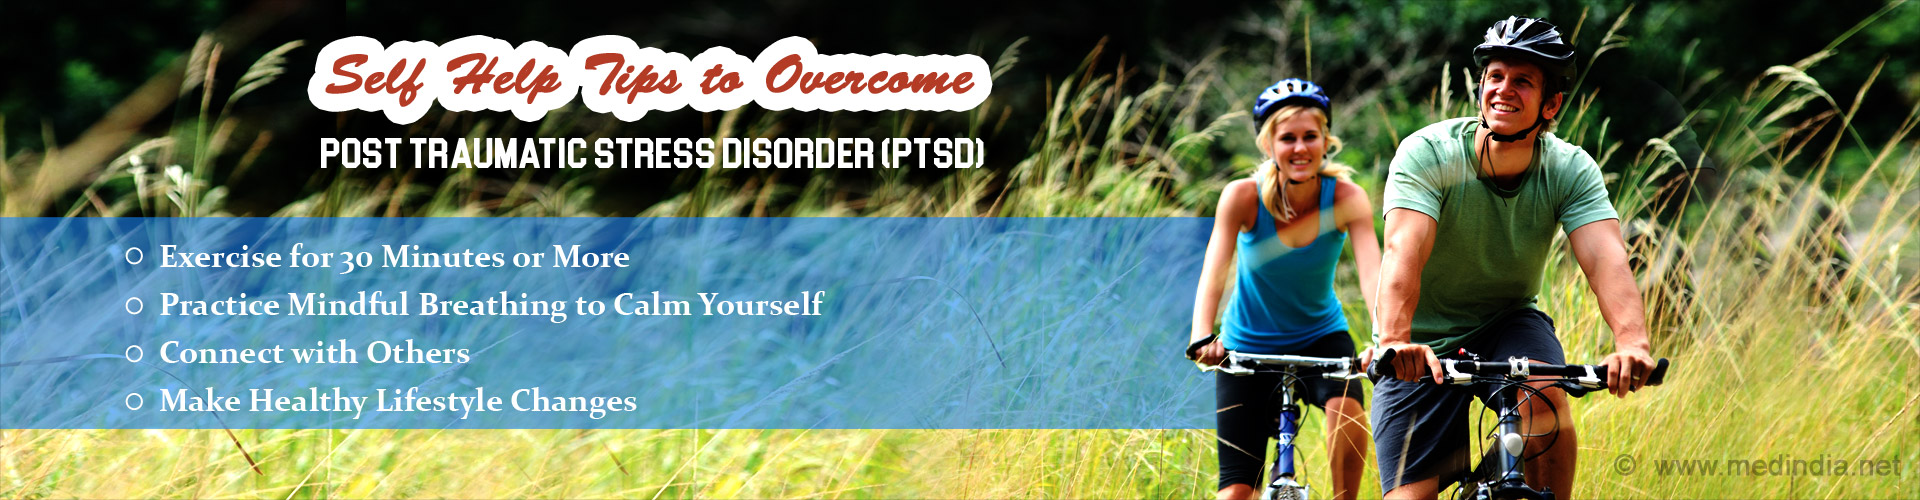 Self Help Tips to Overcome Post Traumatic Stress Disorder (PTSD)